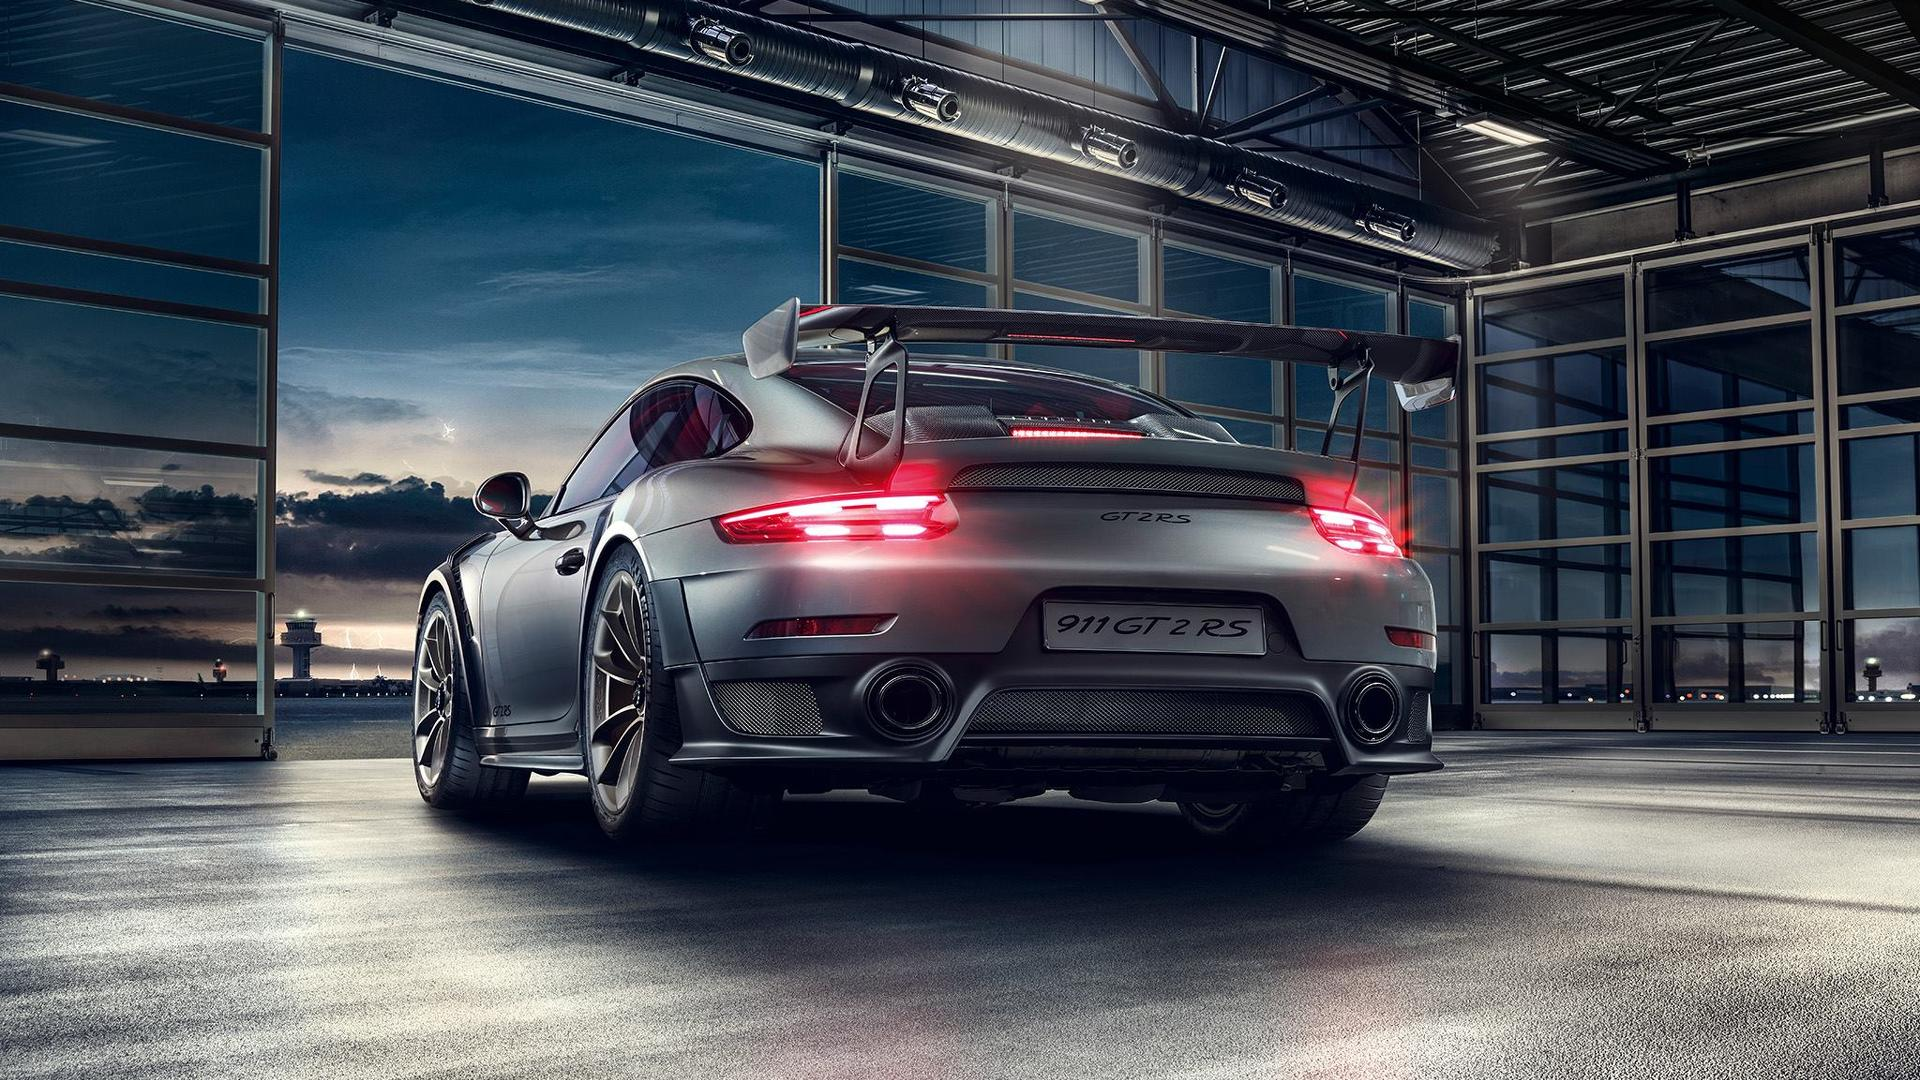 porsche hints 911 gt2 rs will do sub 7 minute nurburgring lap. Black Bedroom Furniture Sets. Home Design Ideas